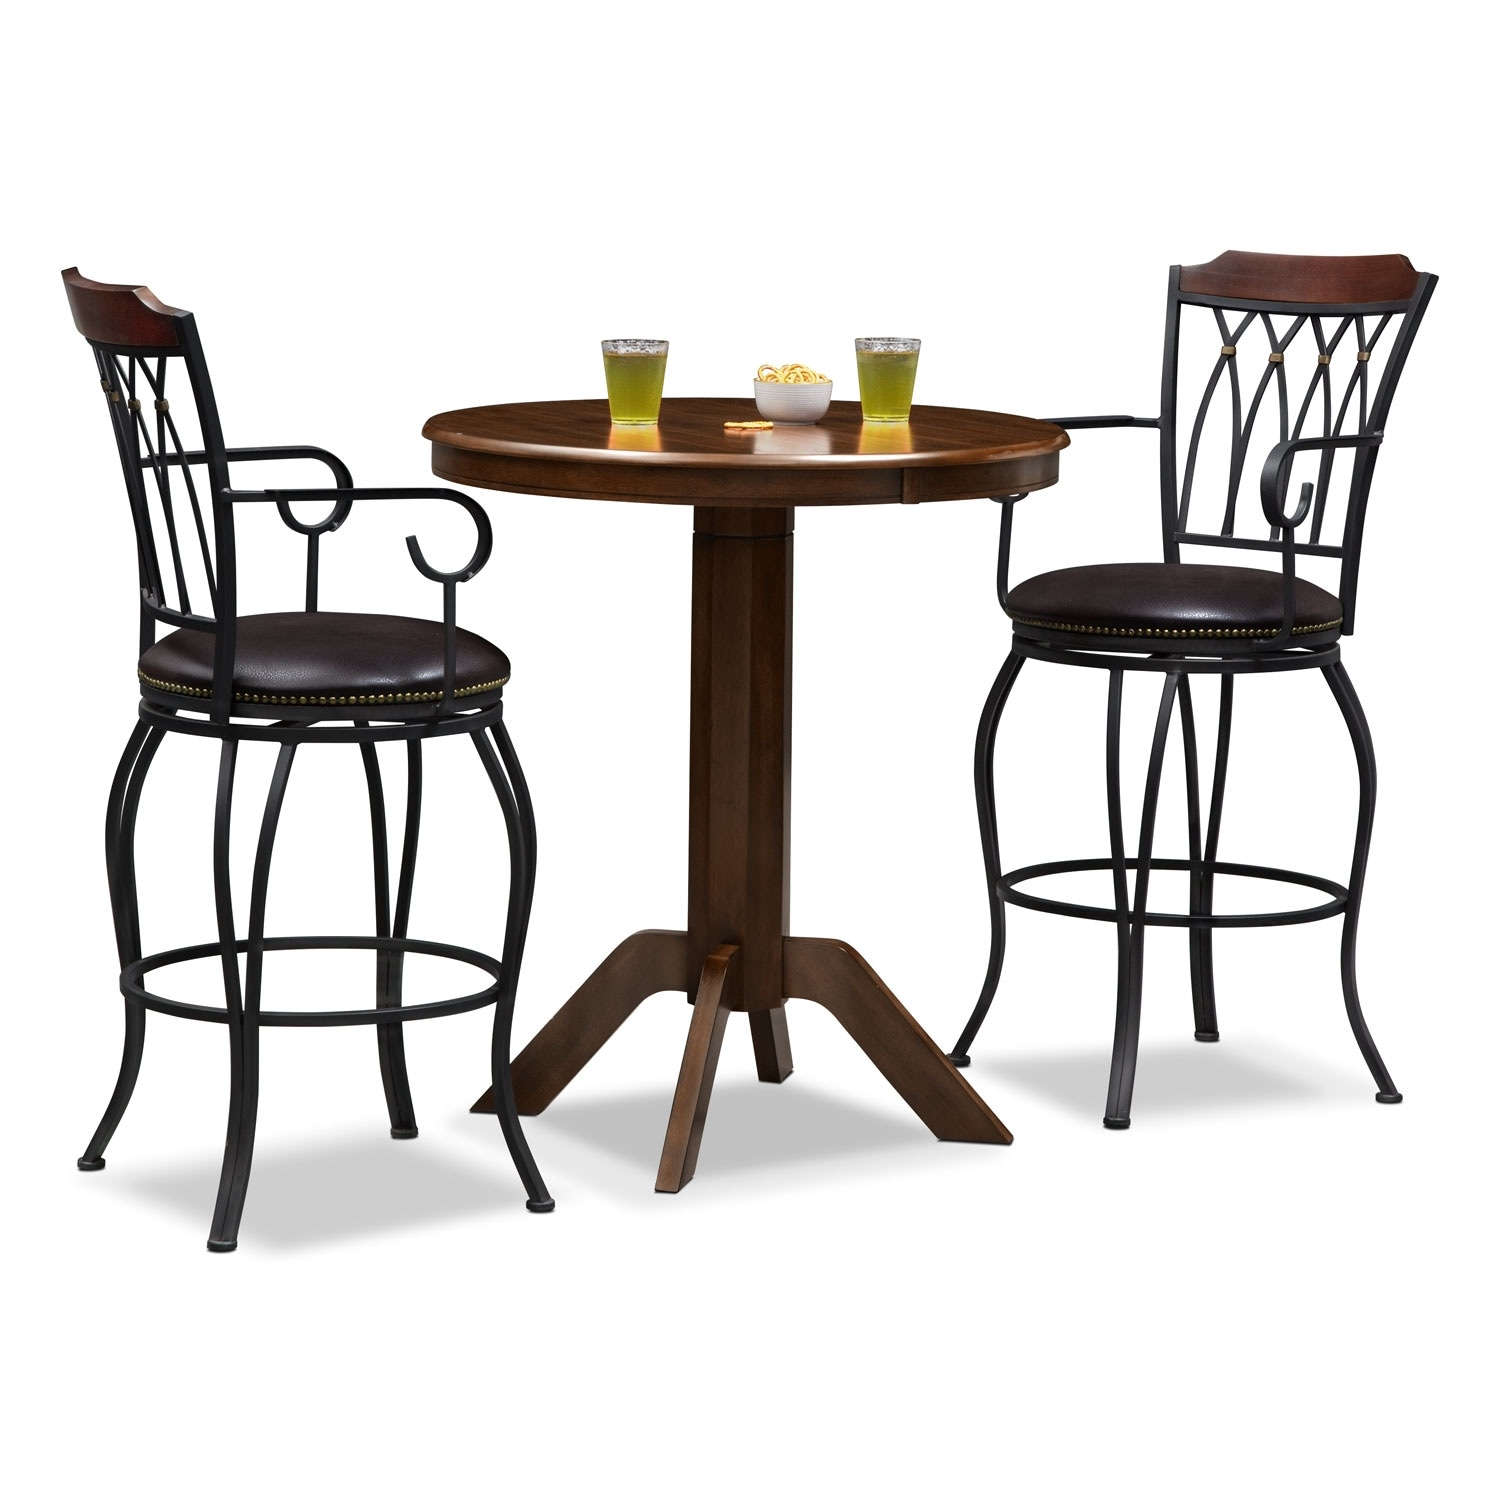 Concord Winfield 3 Pc. Bar-Height Dinette